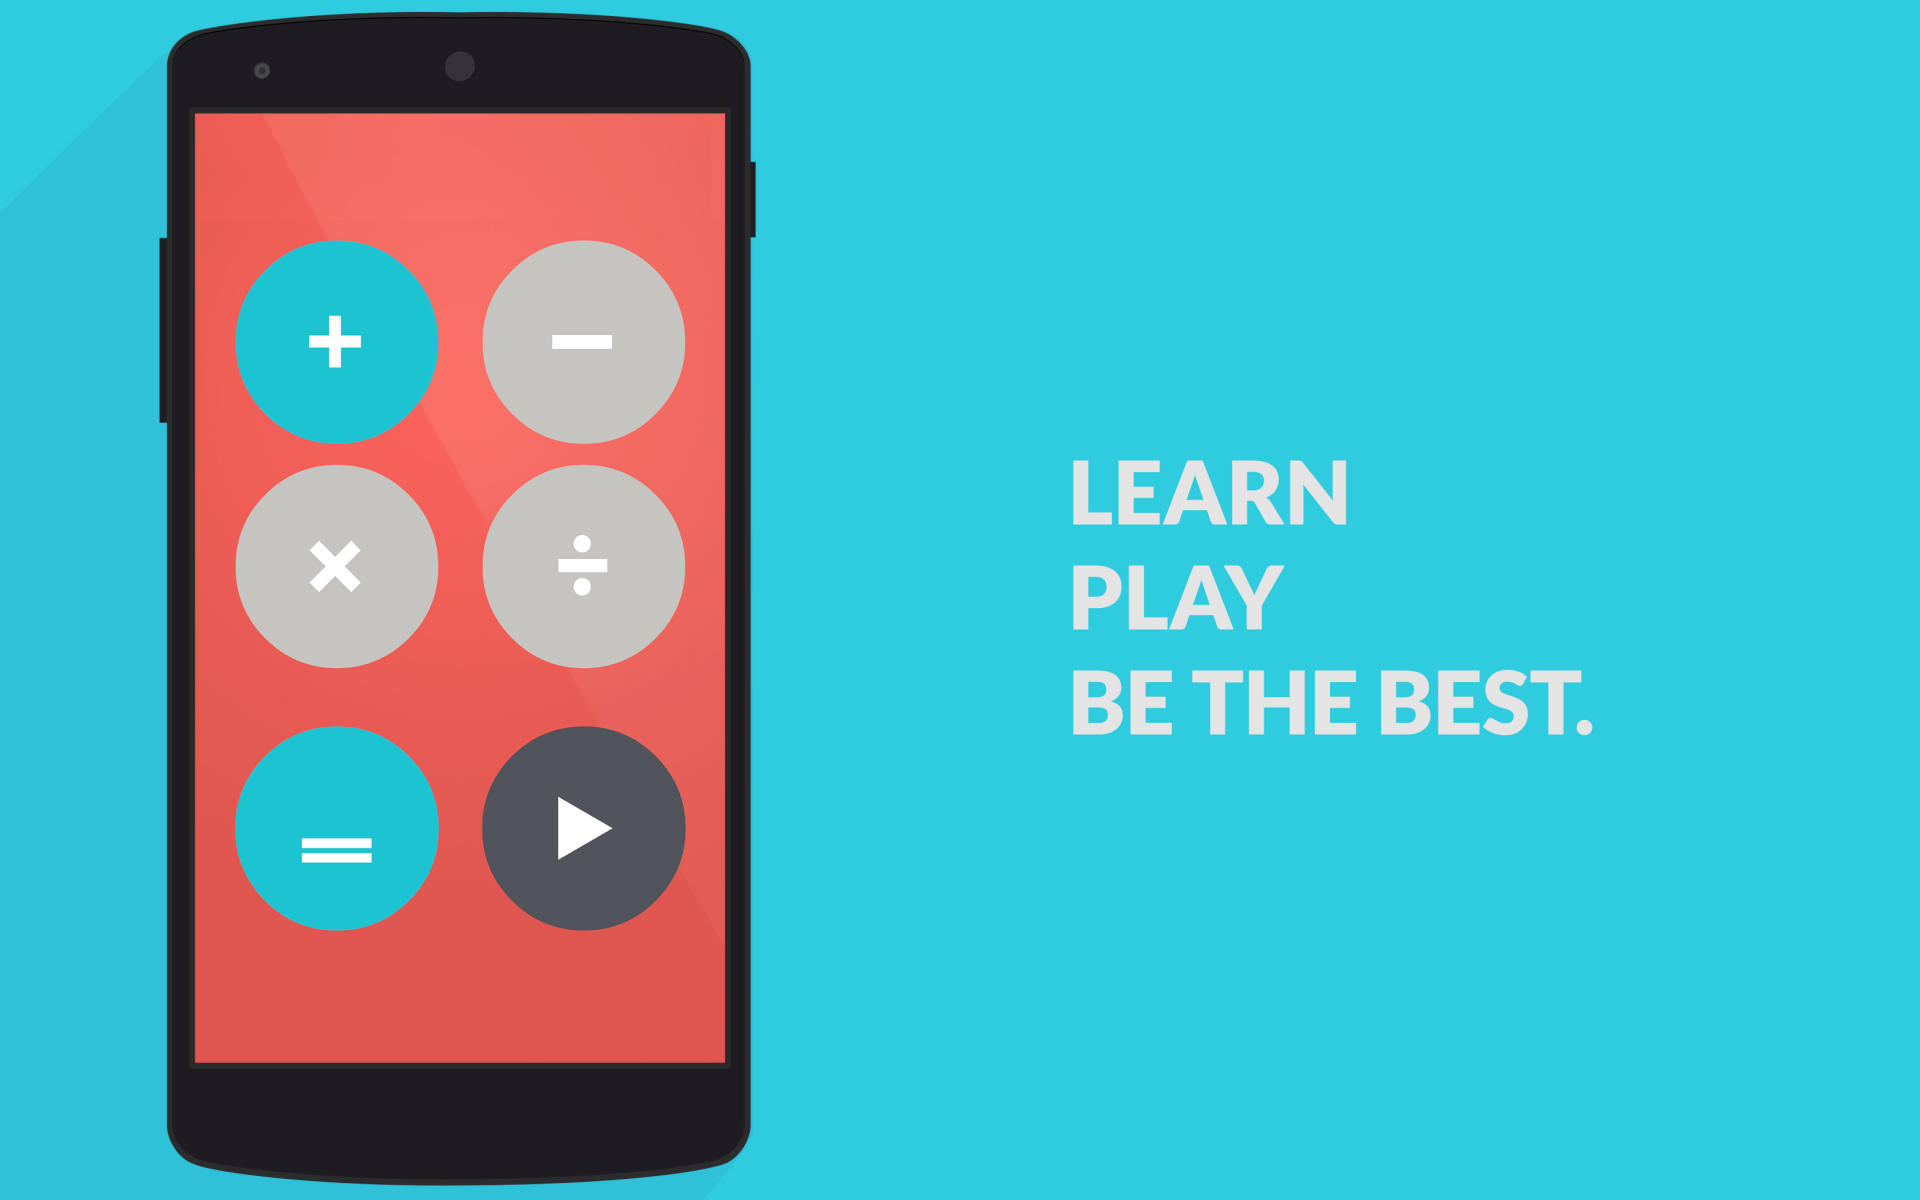 MATHMAN - Train by Math Drills: Amazon.co.uk: Appstore for Android